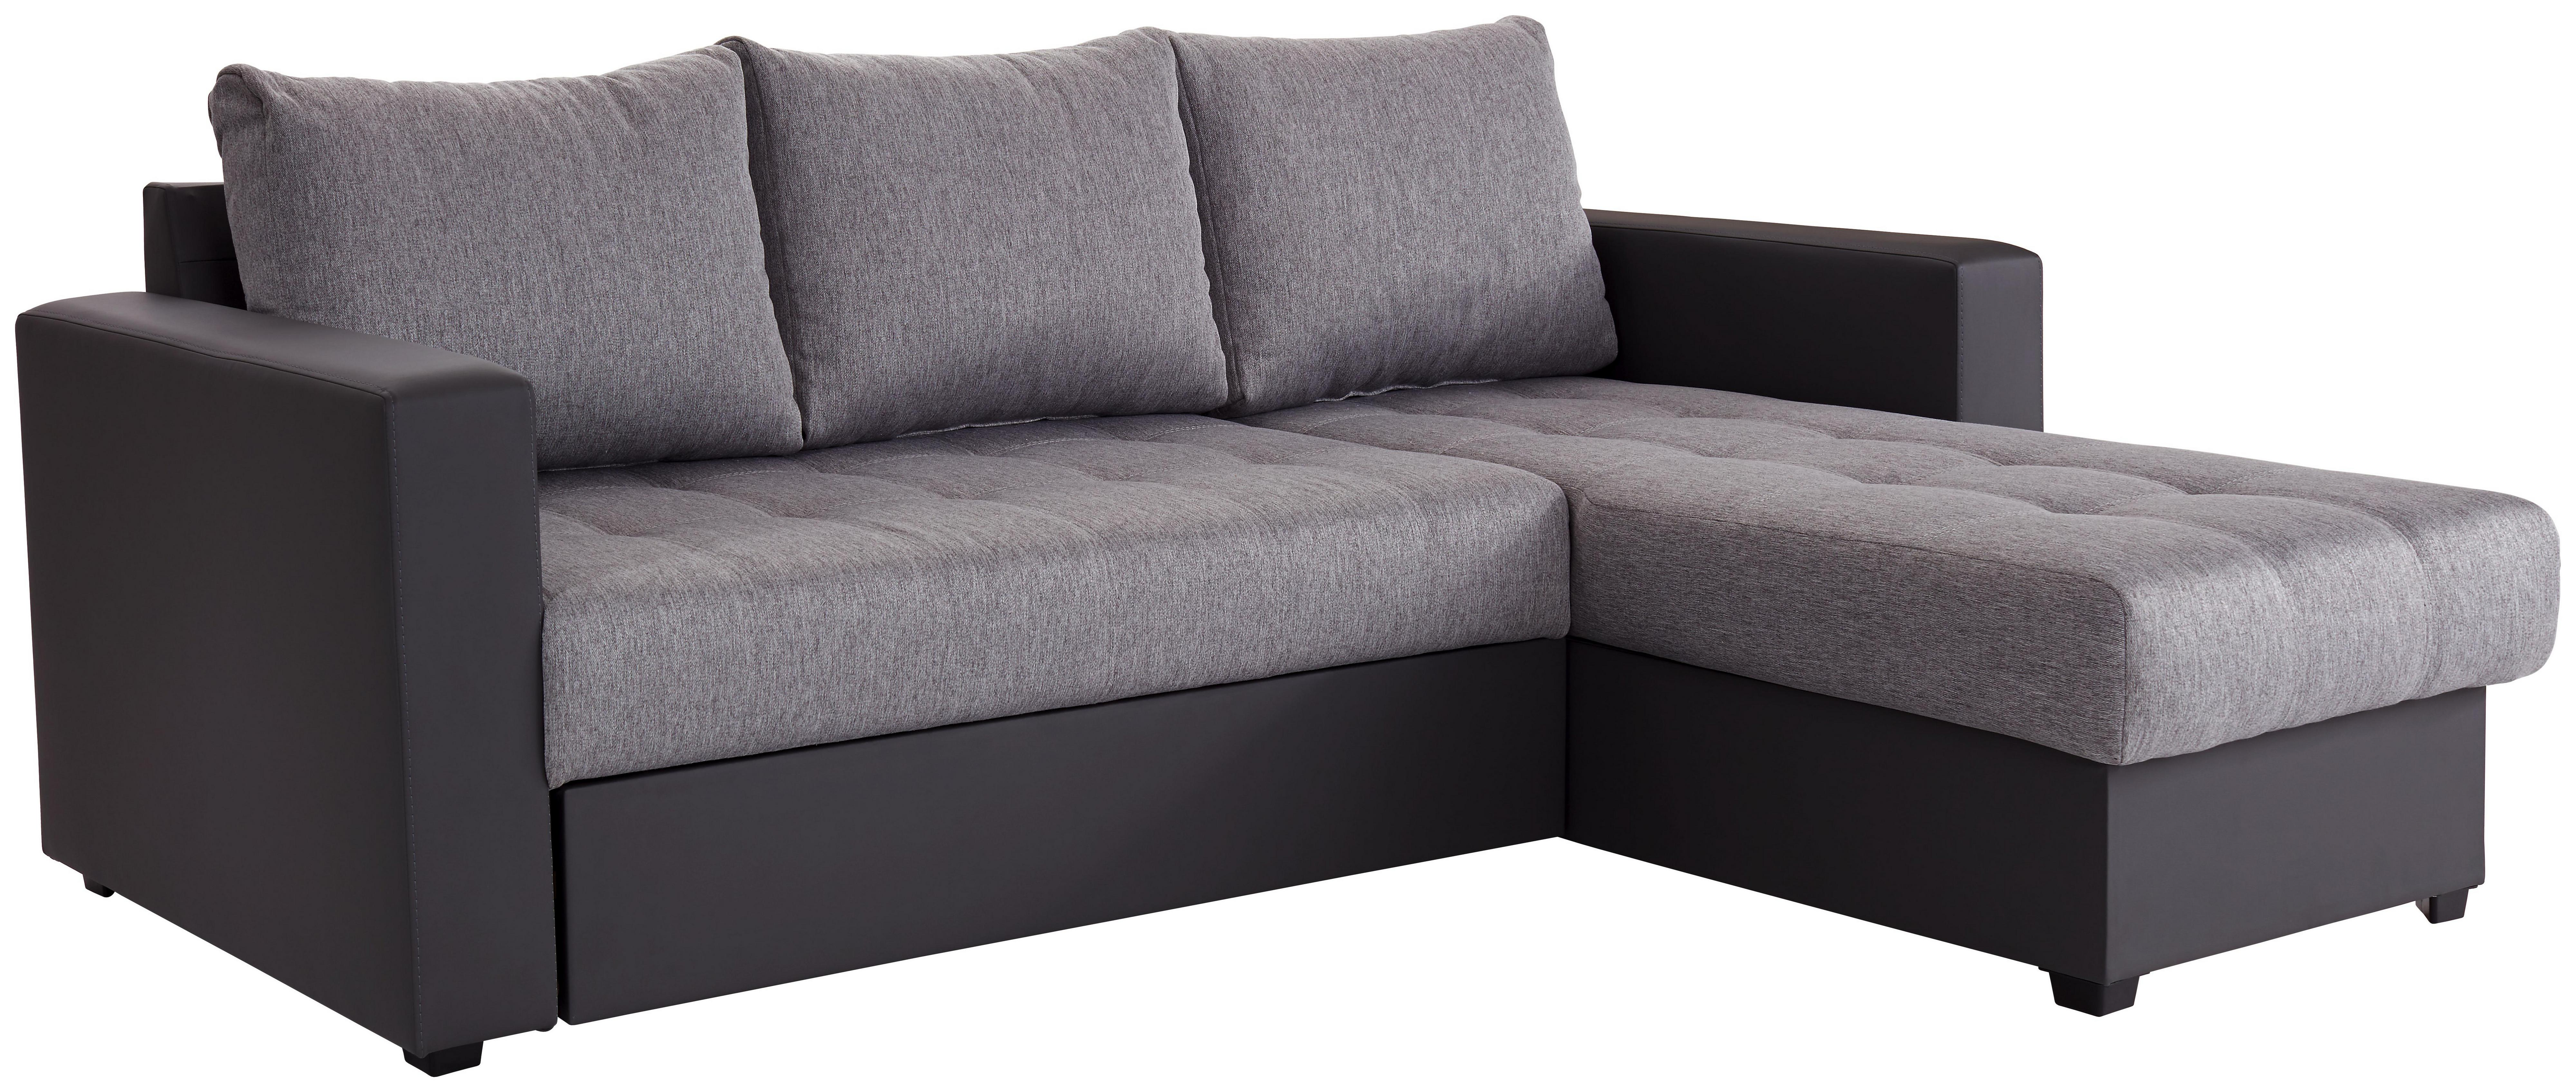 Chesterfield Sofa Riess Ambiente Ledersofa Ecksofa Soarnitur Sofa Mit Bettfunktion Sofa Daily